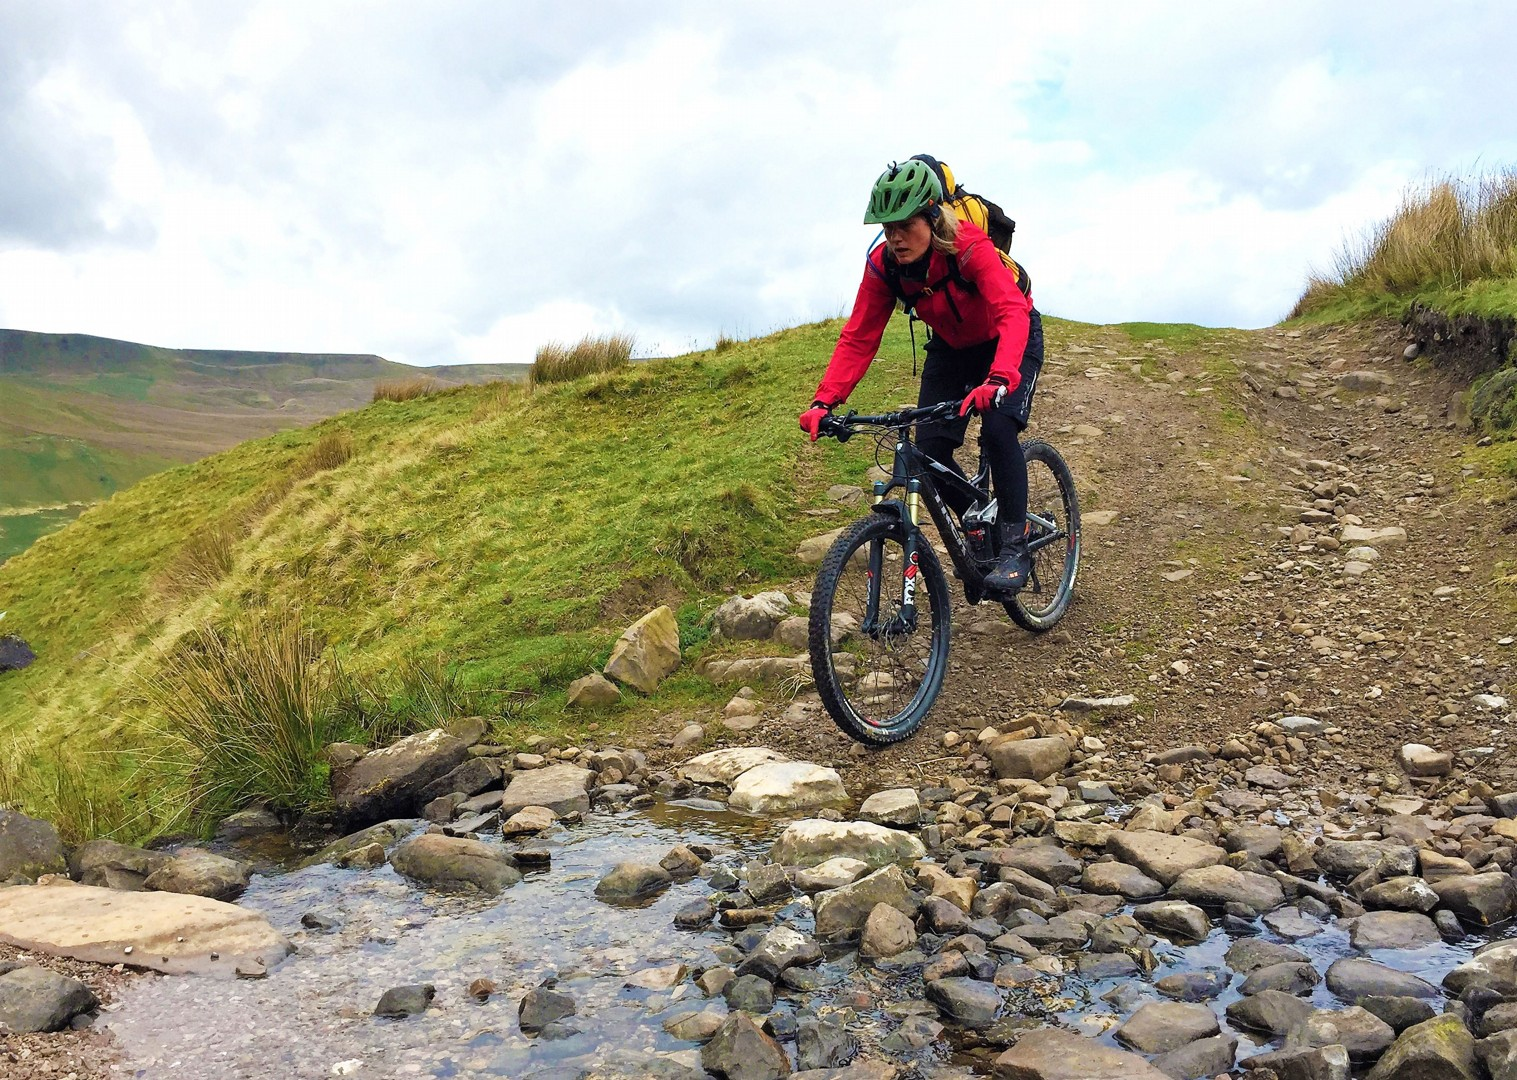 rugged-north-pennine-hills-mtb-mountain-biking-uk.jpg - UK - Pennine Bridleway - Guided Mountain Bike Weekend - Mountain Biking